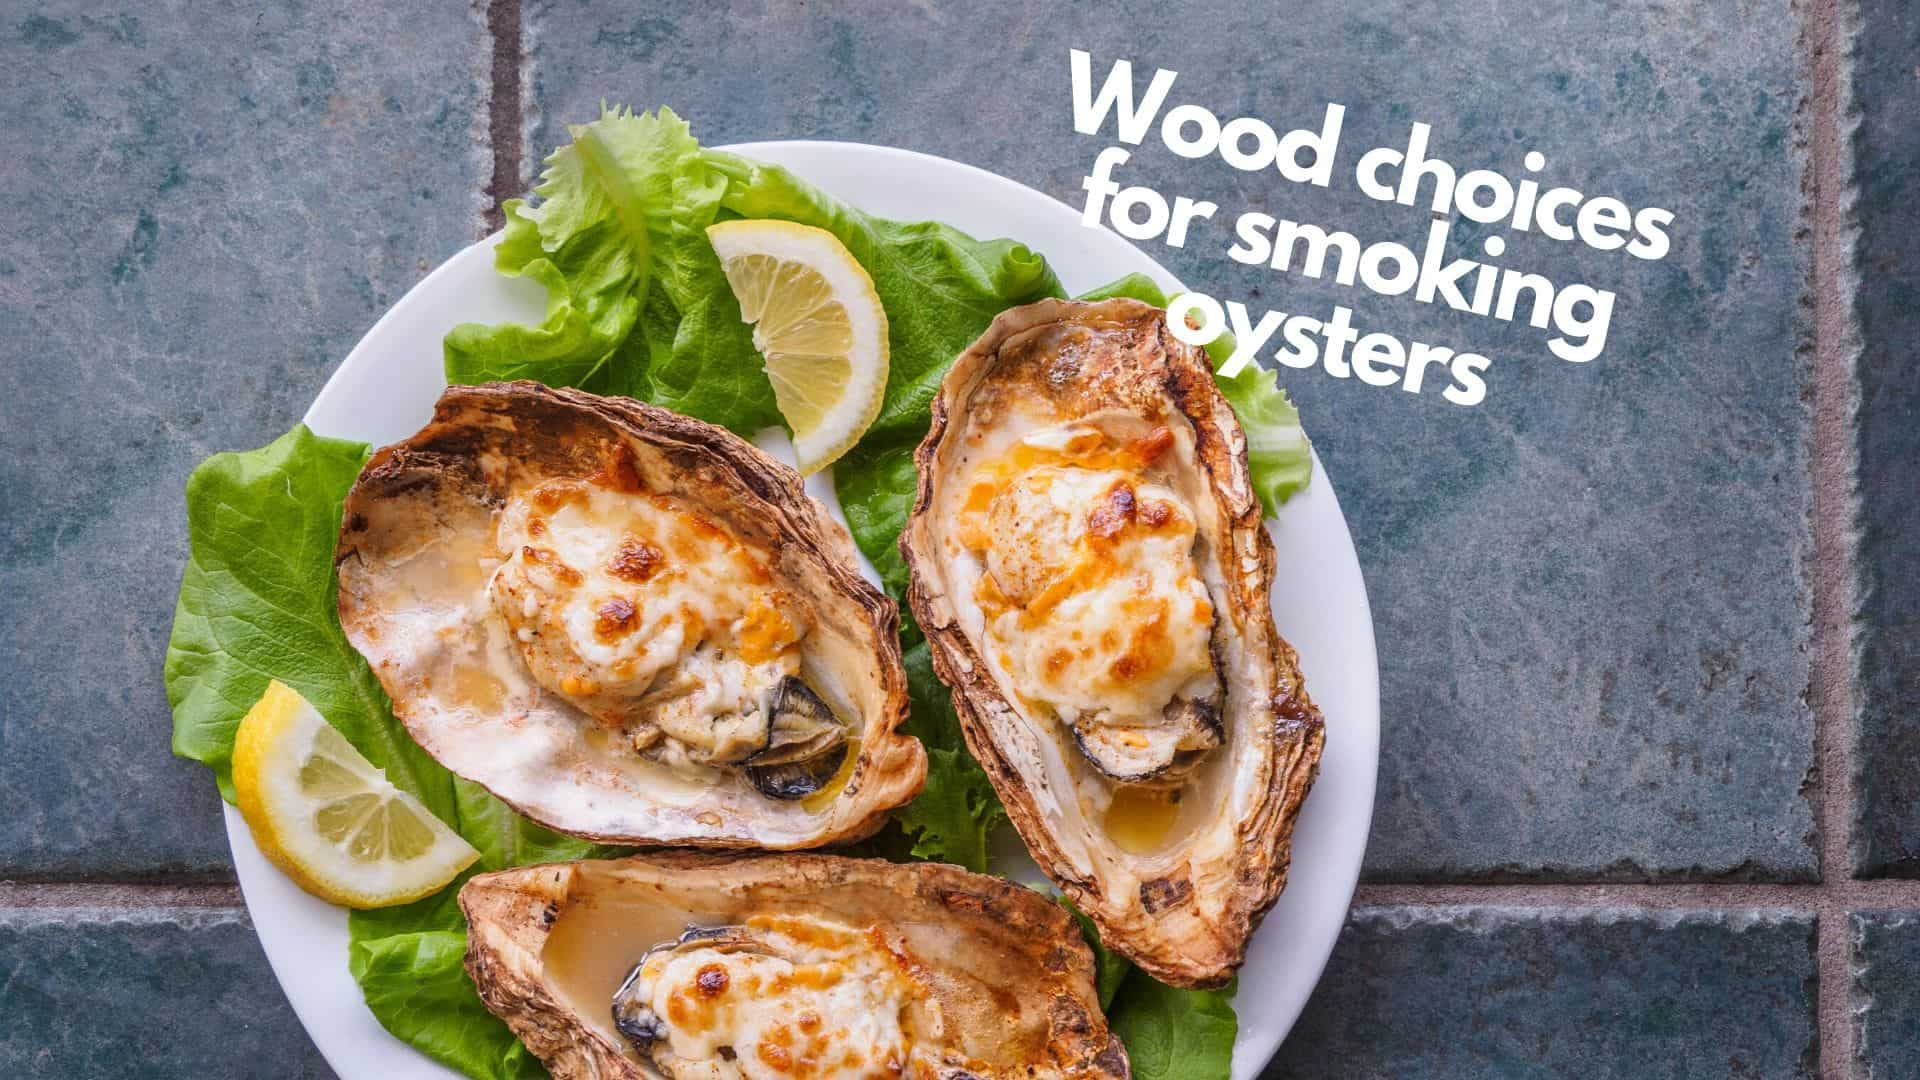 Best wood for smoking oysters | 7 top choices & 4 to really avoid